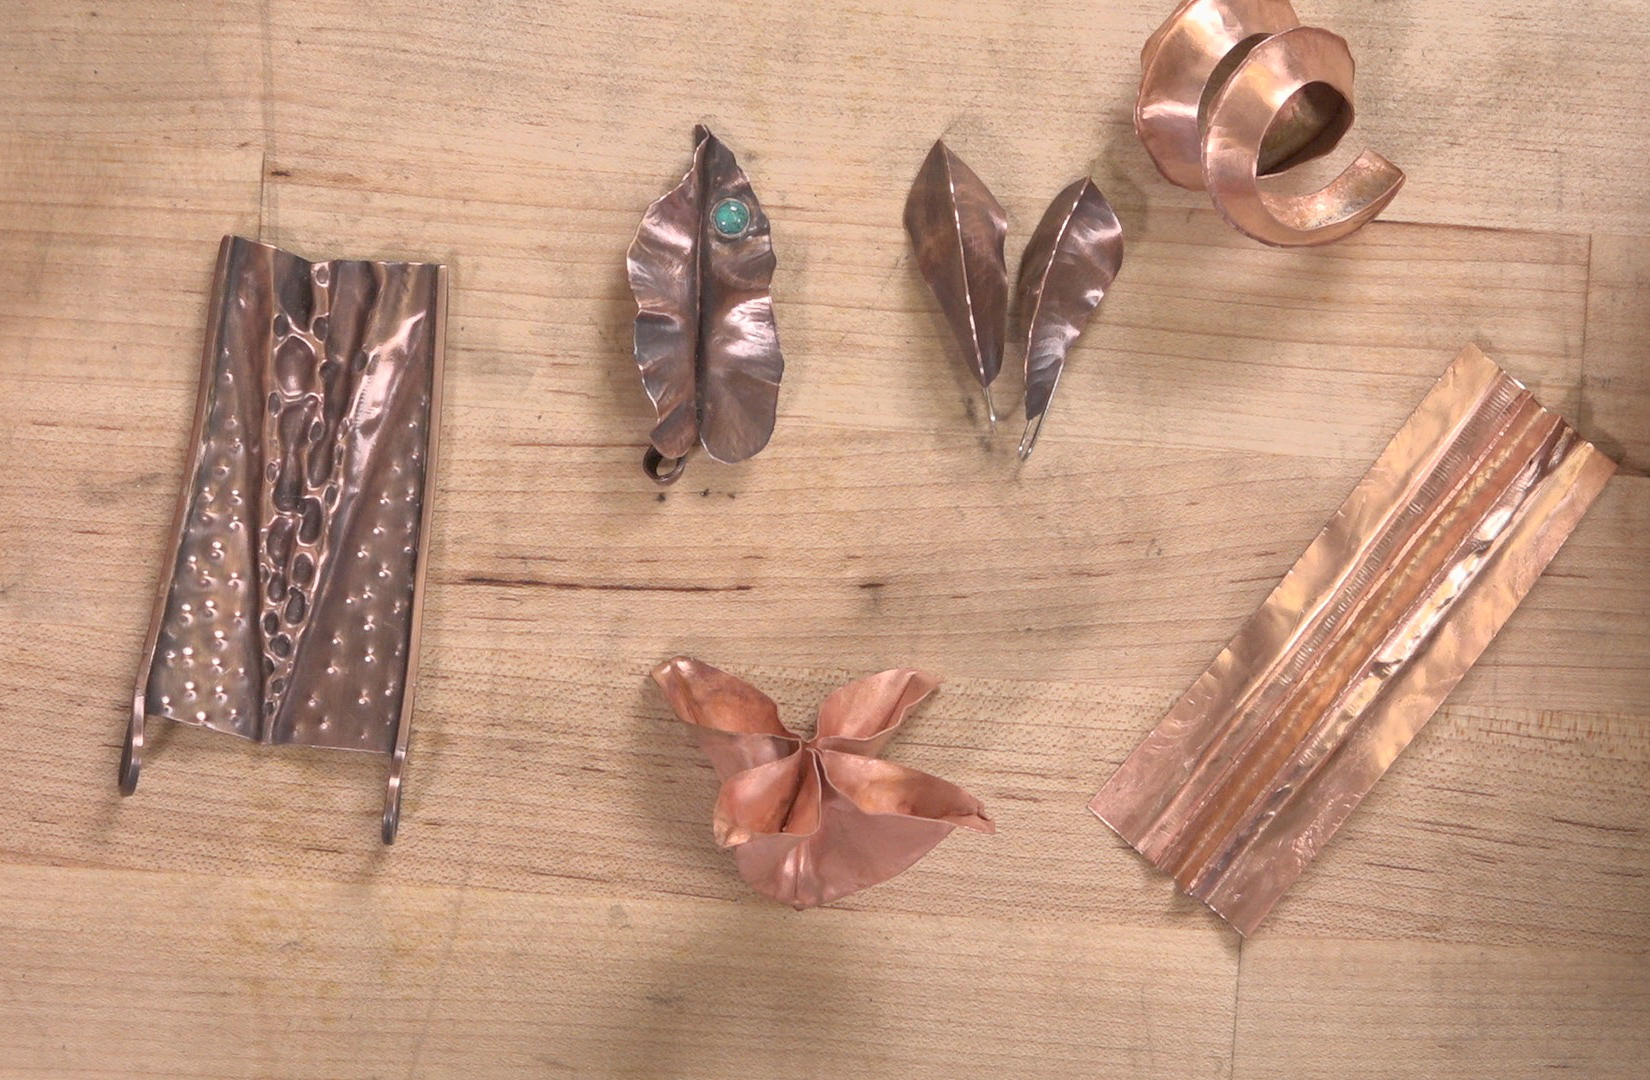 Https Offers Wirejewelry Com Kim St Jean Fold Forming 21 Inf Contact Key 12135c47013cf3310320c0bc0196555de6abc7ef250881a26a8 Fold Copper Sheets Free Supplies